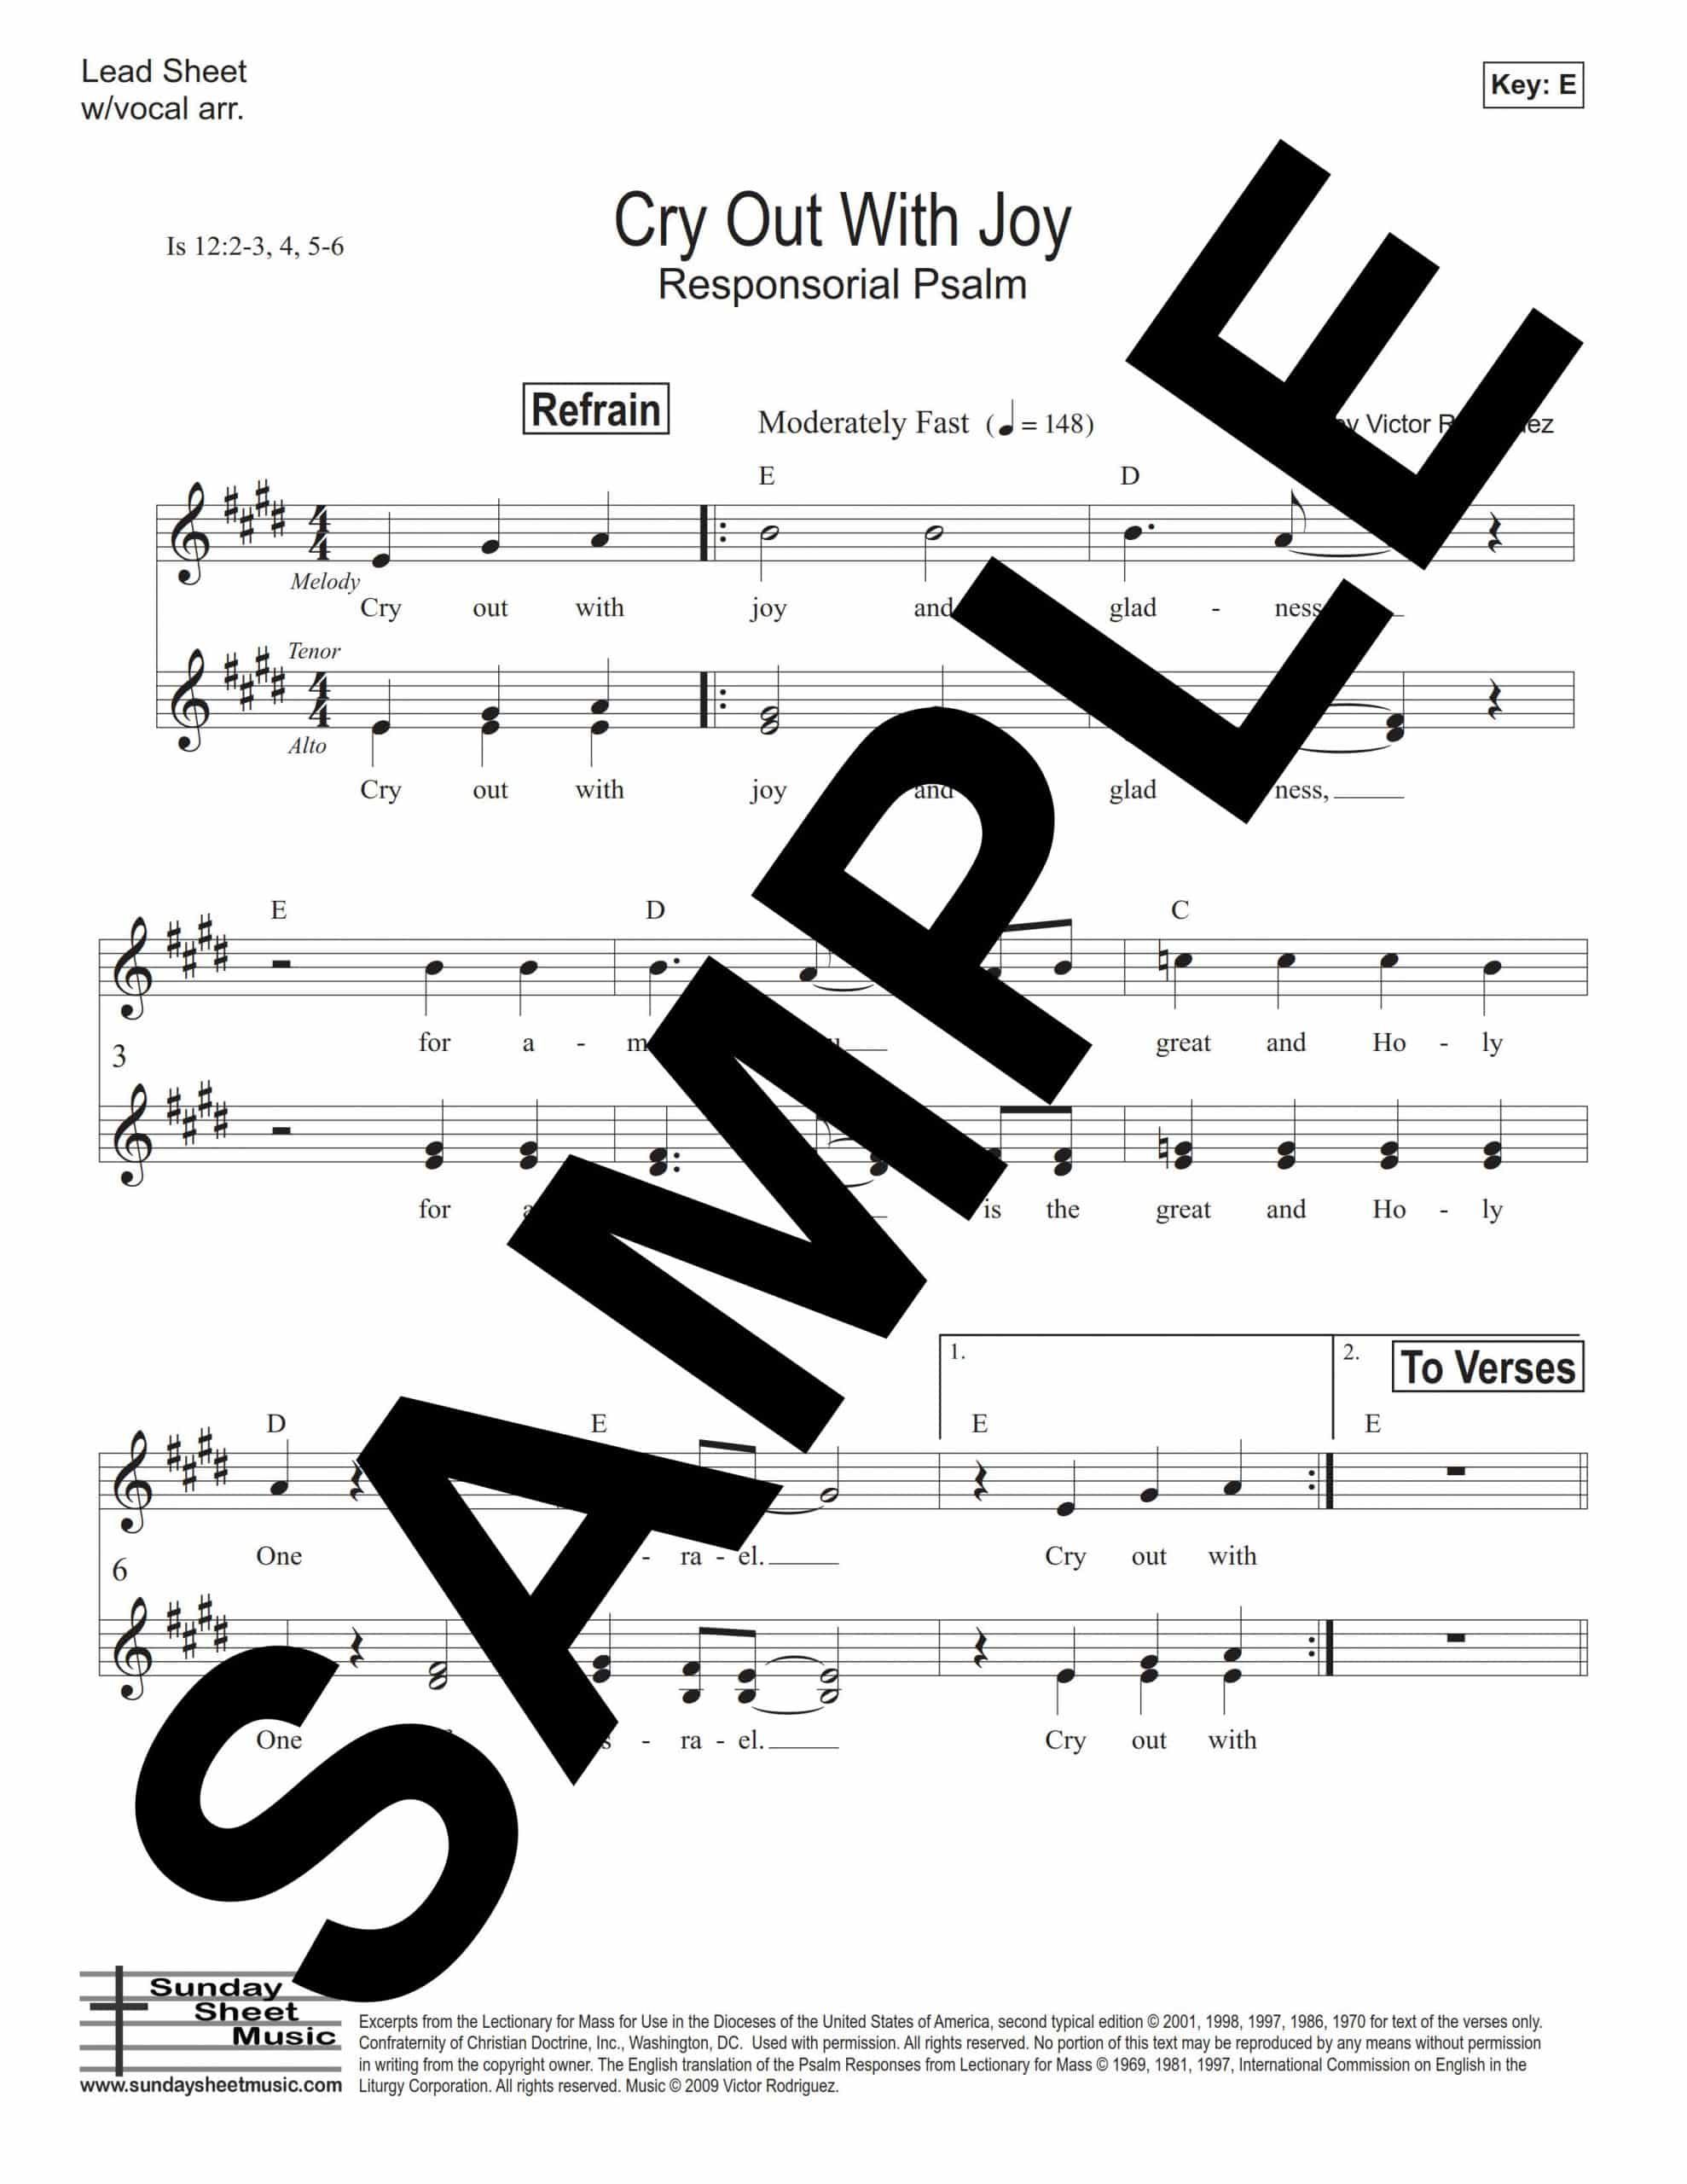 Isaiah 12 Cry Out With Joy Rodriguez Sample Lead Sheet scaled